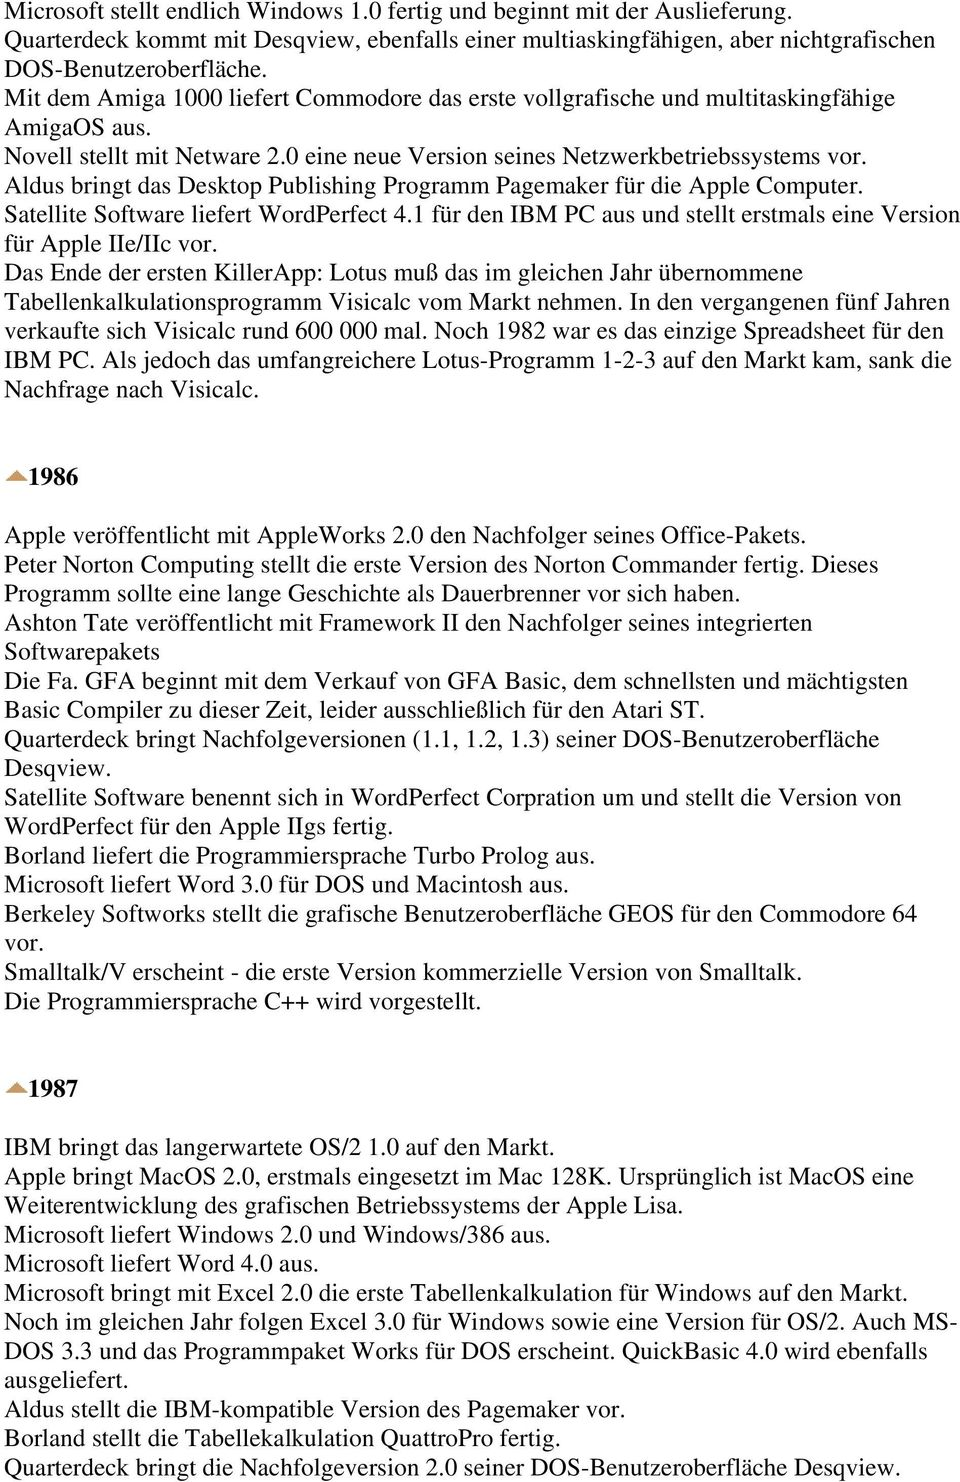 Aldus bringt das Desktop Publishing Programm Pagemaker für die Apple Computer. Satellite Software liefert WordPerfect 4.1 für den IBM PC aus und stellt erstmals eine Version für Apple IIe/IIc vor.